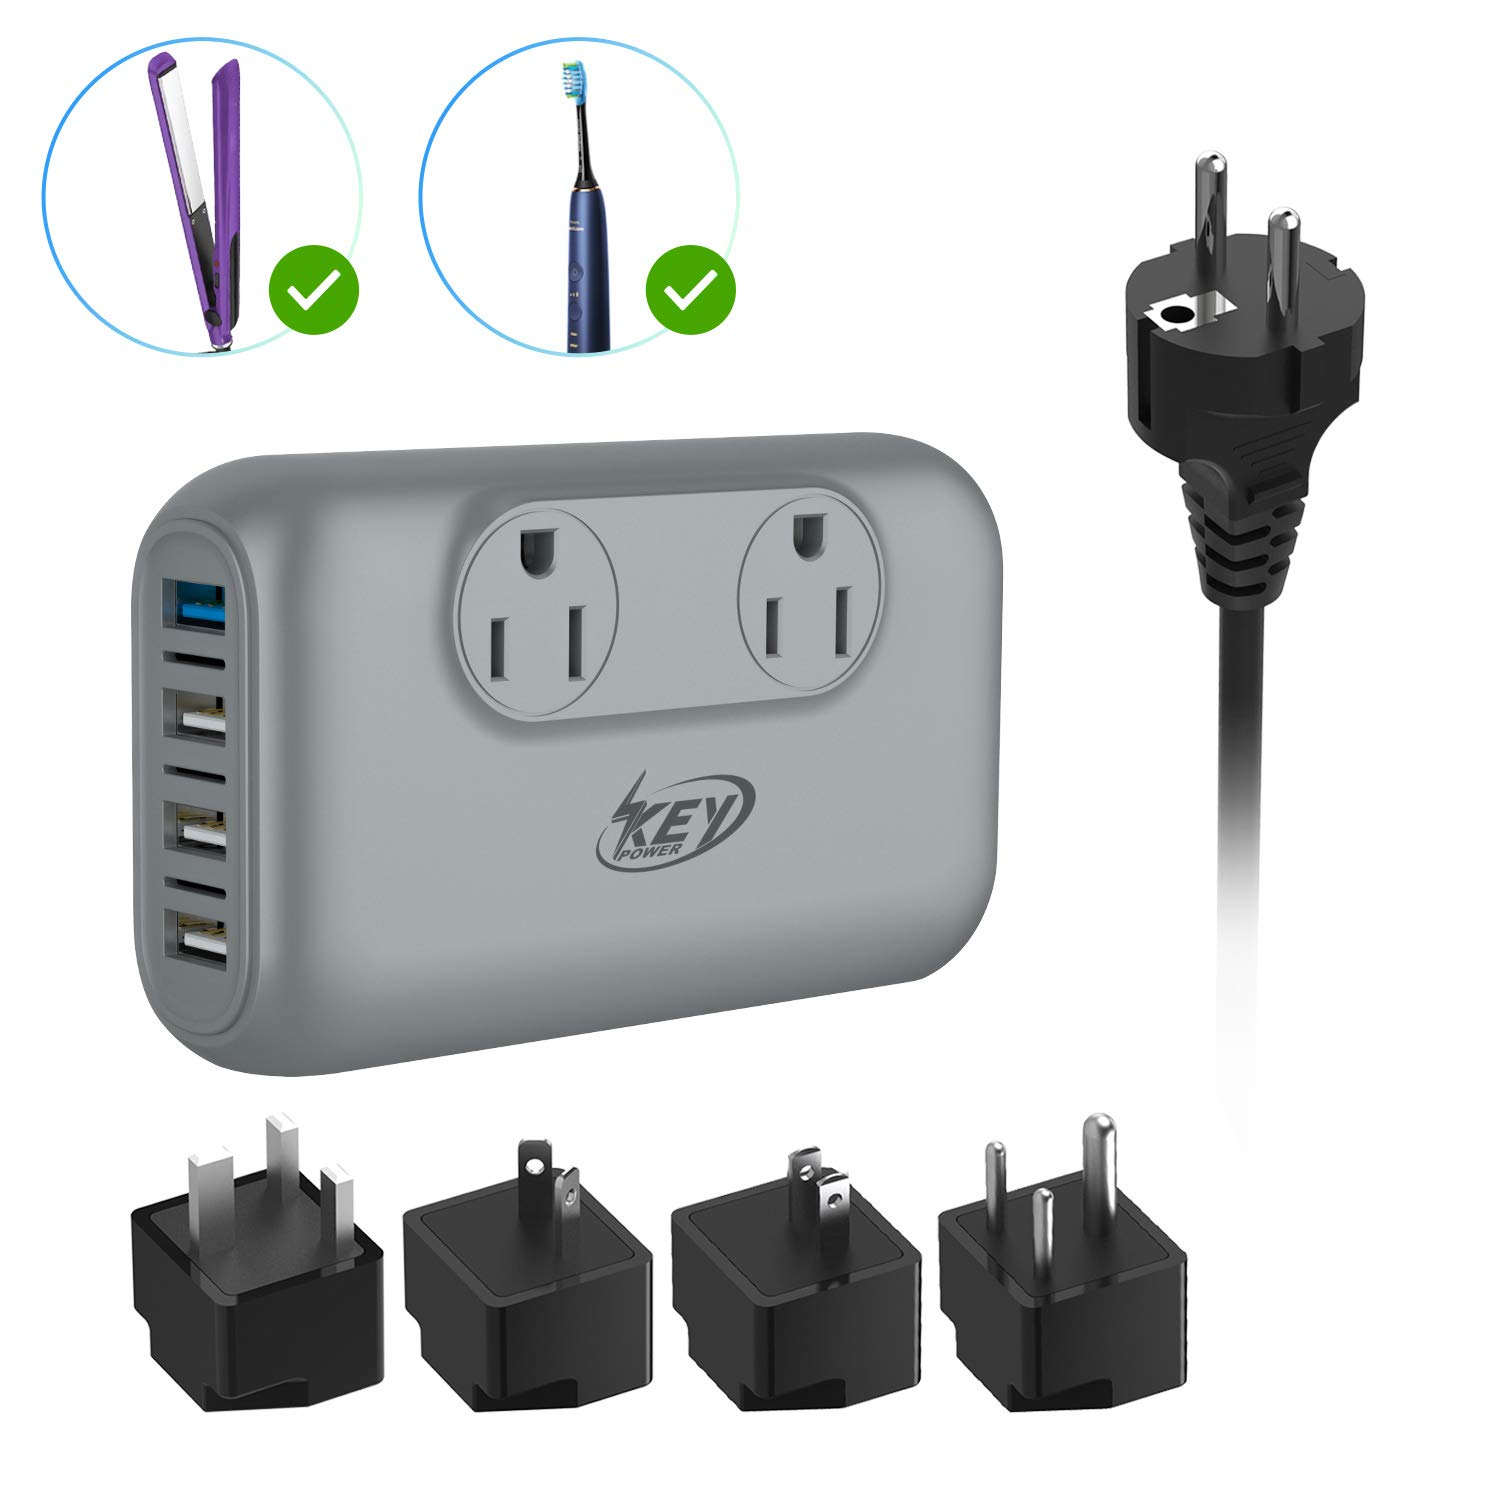 Key Power 220V to 110V Step Down Voltage Converter and International Travel Adapter, for CPAP, Hair Straightener Flat Iron, Hair Curling Iron, Toothbrush, Laptop - [Safely Use USA Electronic Overseas]